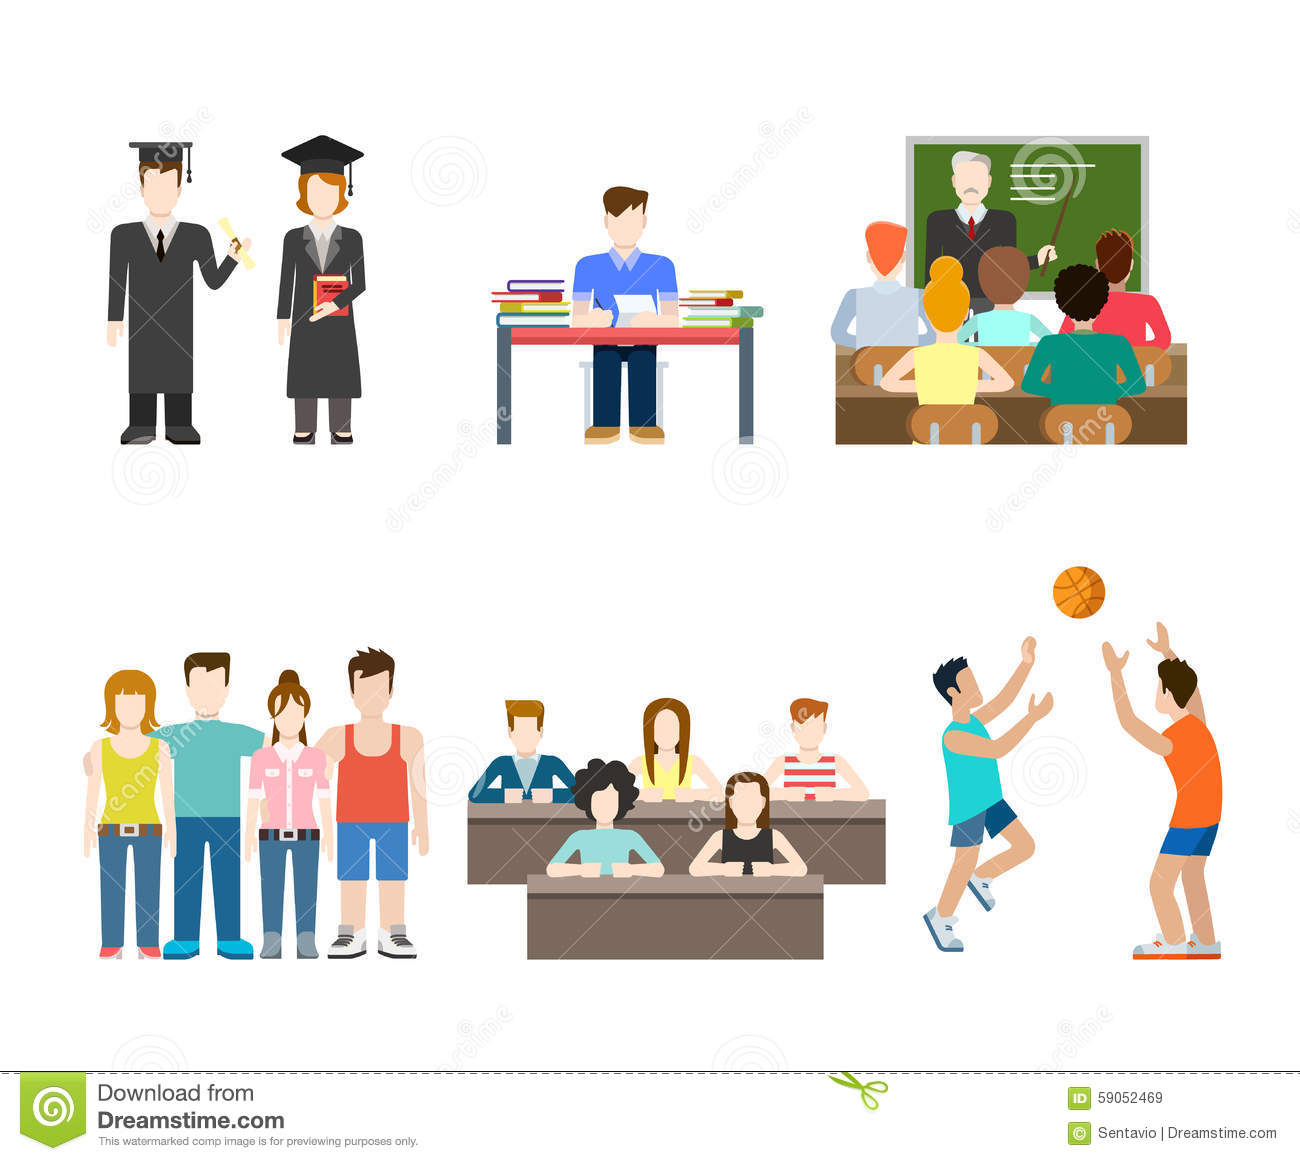 an analysis of the college degree and the college education for a modern person Necessity of getting a college degree that a college education is necessary for success a college education is necessary for a person to be.